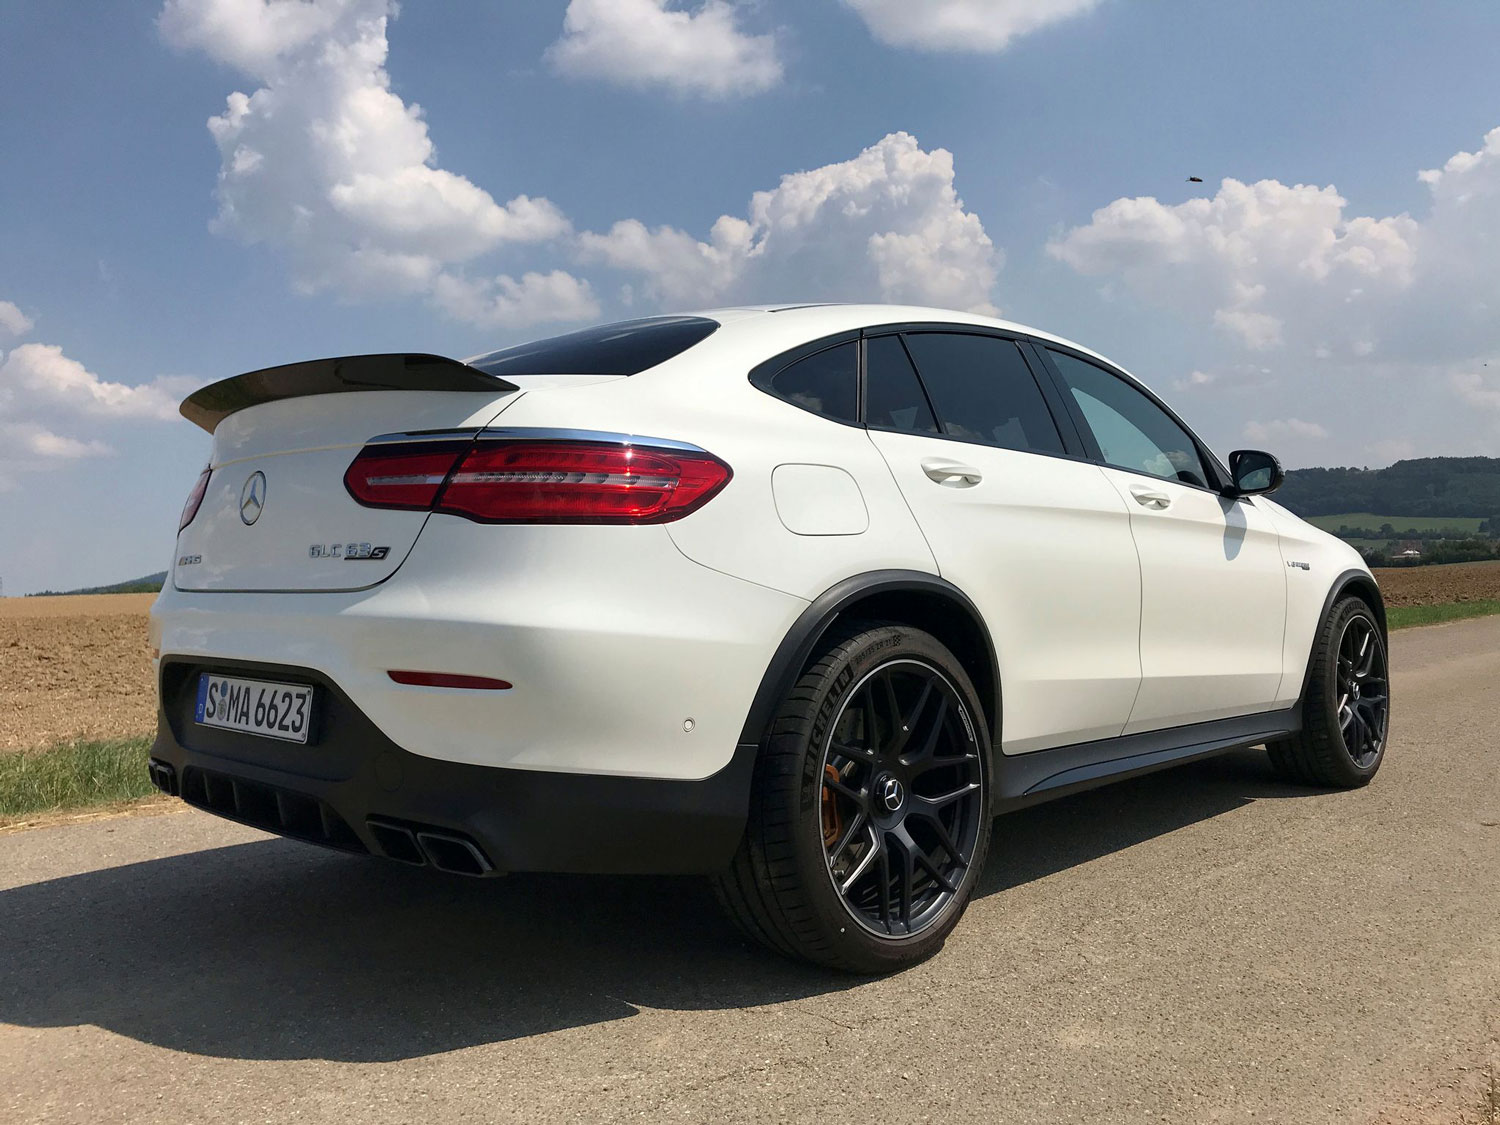 Новий Mercedes-AMG GLC 63 S 4MATIC задні фари